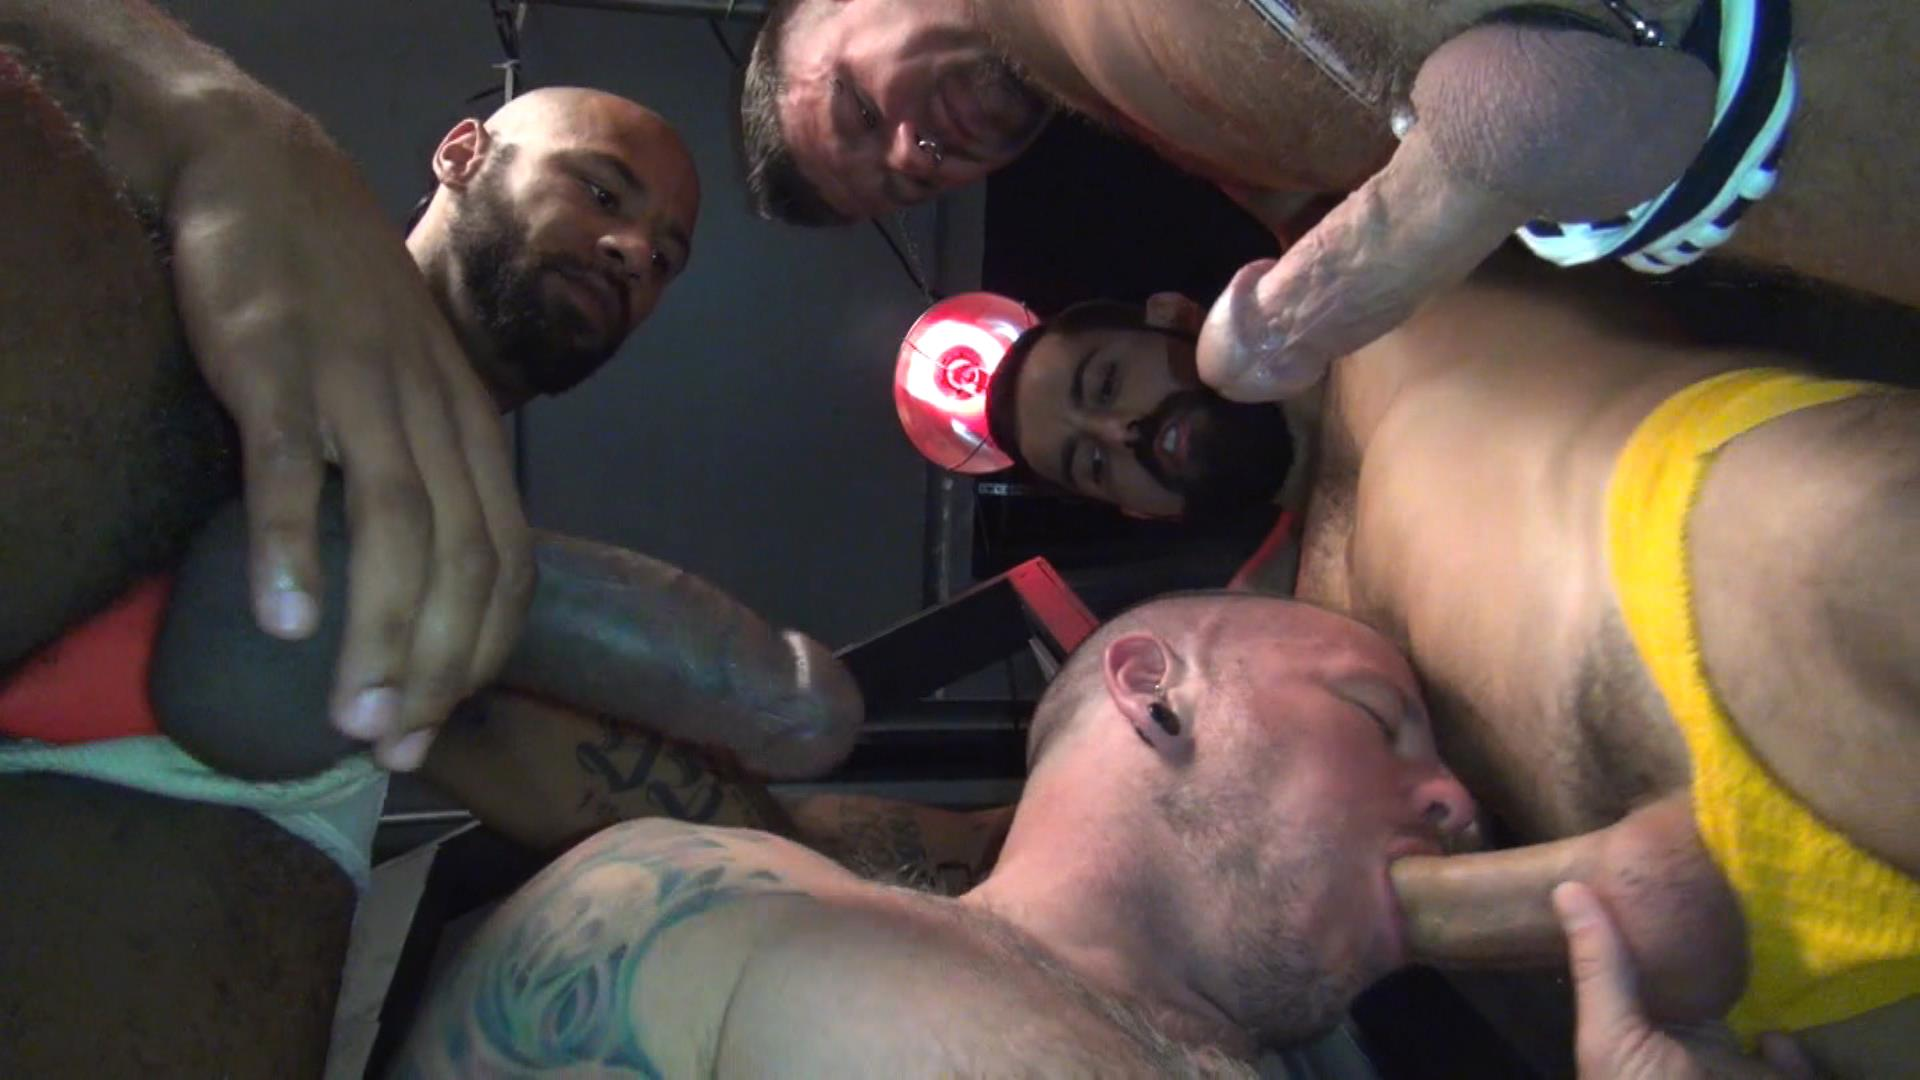 Raw Fuck Club Raw Fuck Club Max Cameron and Christian Matthews and Kory Mitchel and Dean Brody Bareback Bathhouse Amateur Gay Porn 5 Four Way Bareback Fucking And Cum Fest At The Bathhouse